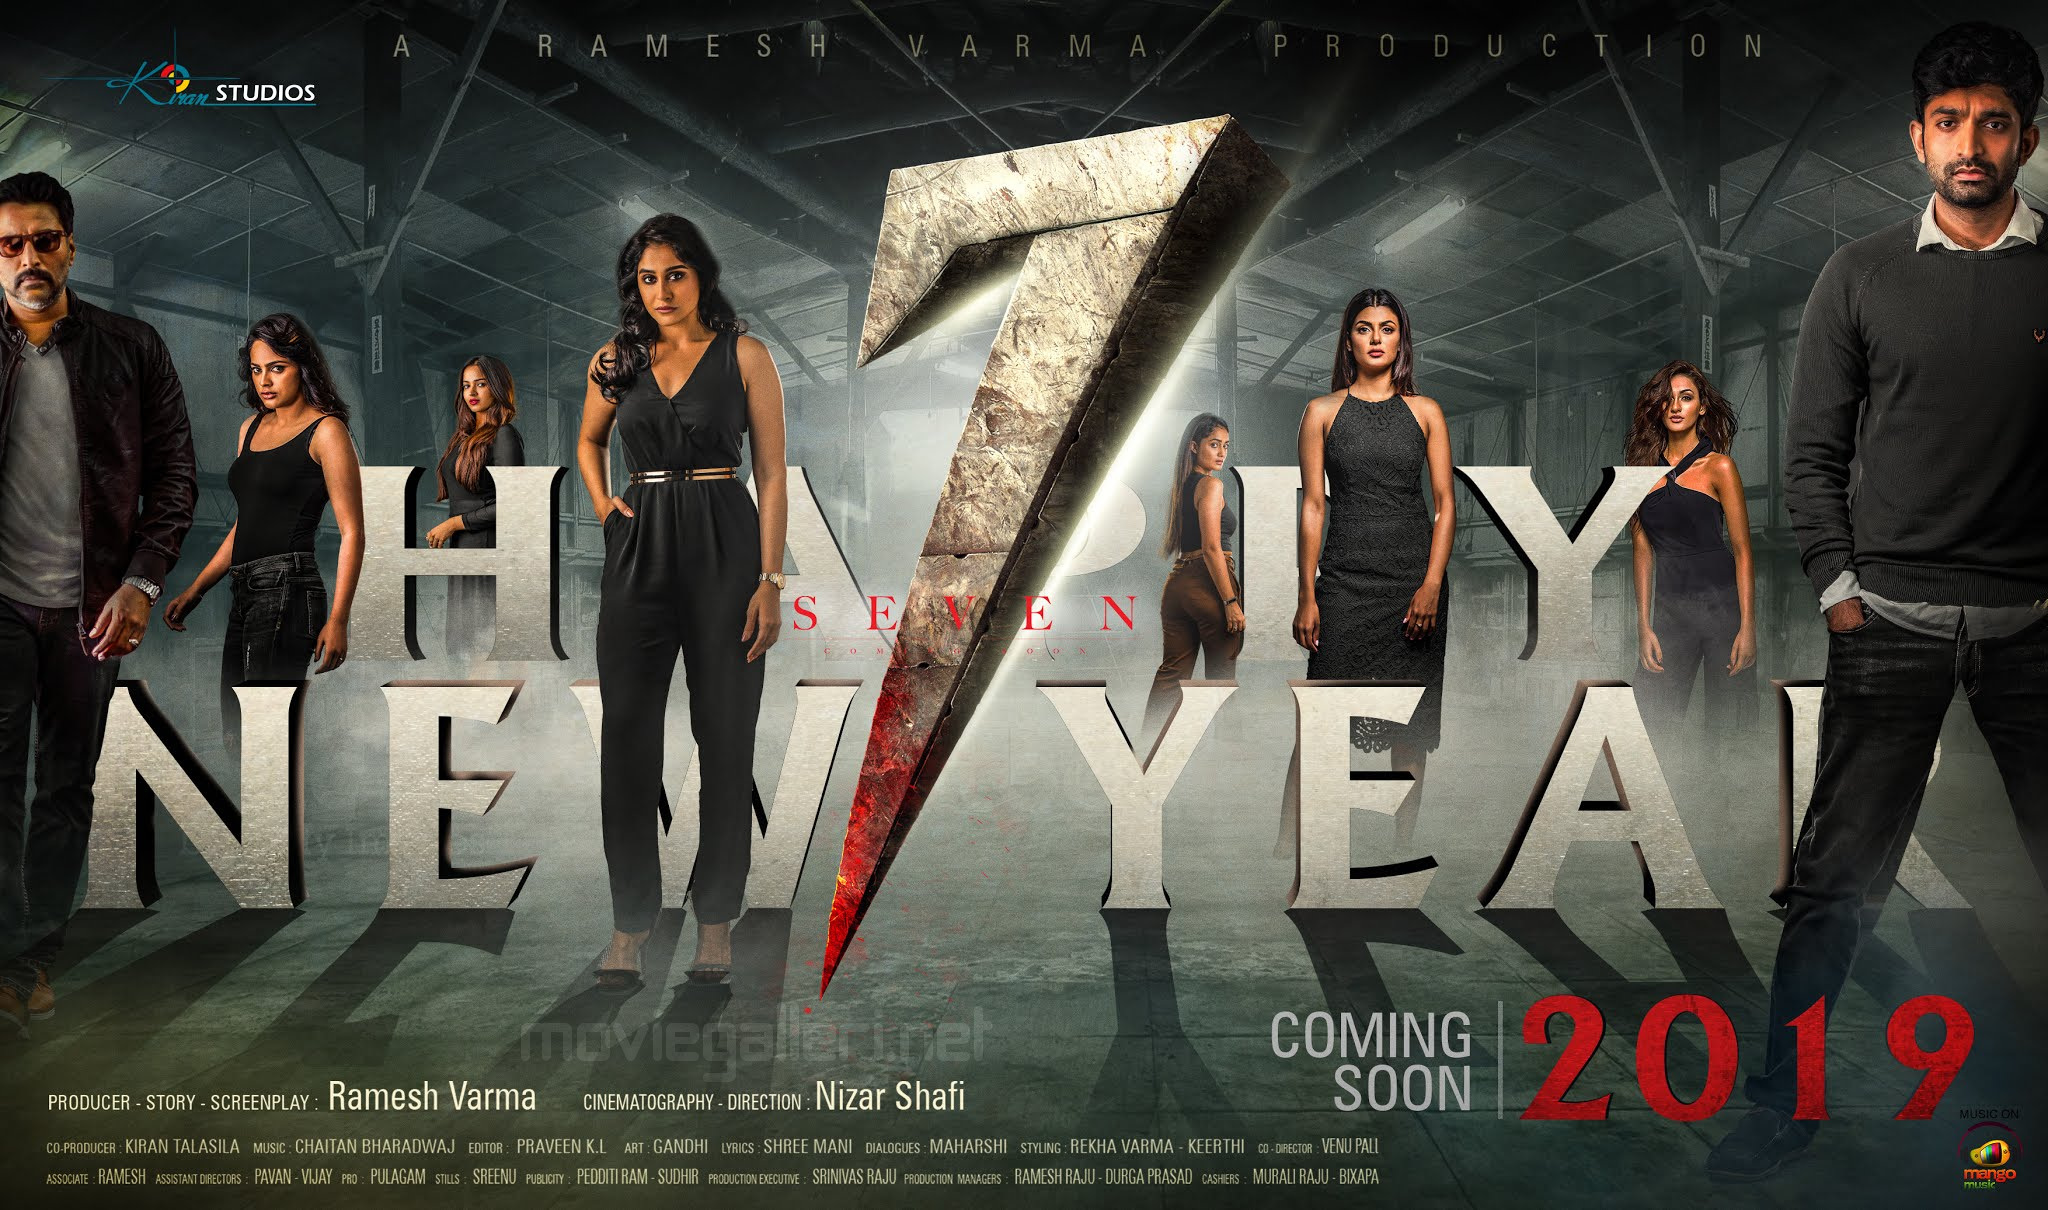 7 Seven Movie New Year 2019 Wishes Wallpaper HD  New Movie Posters